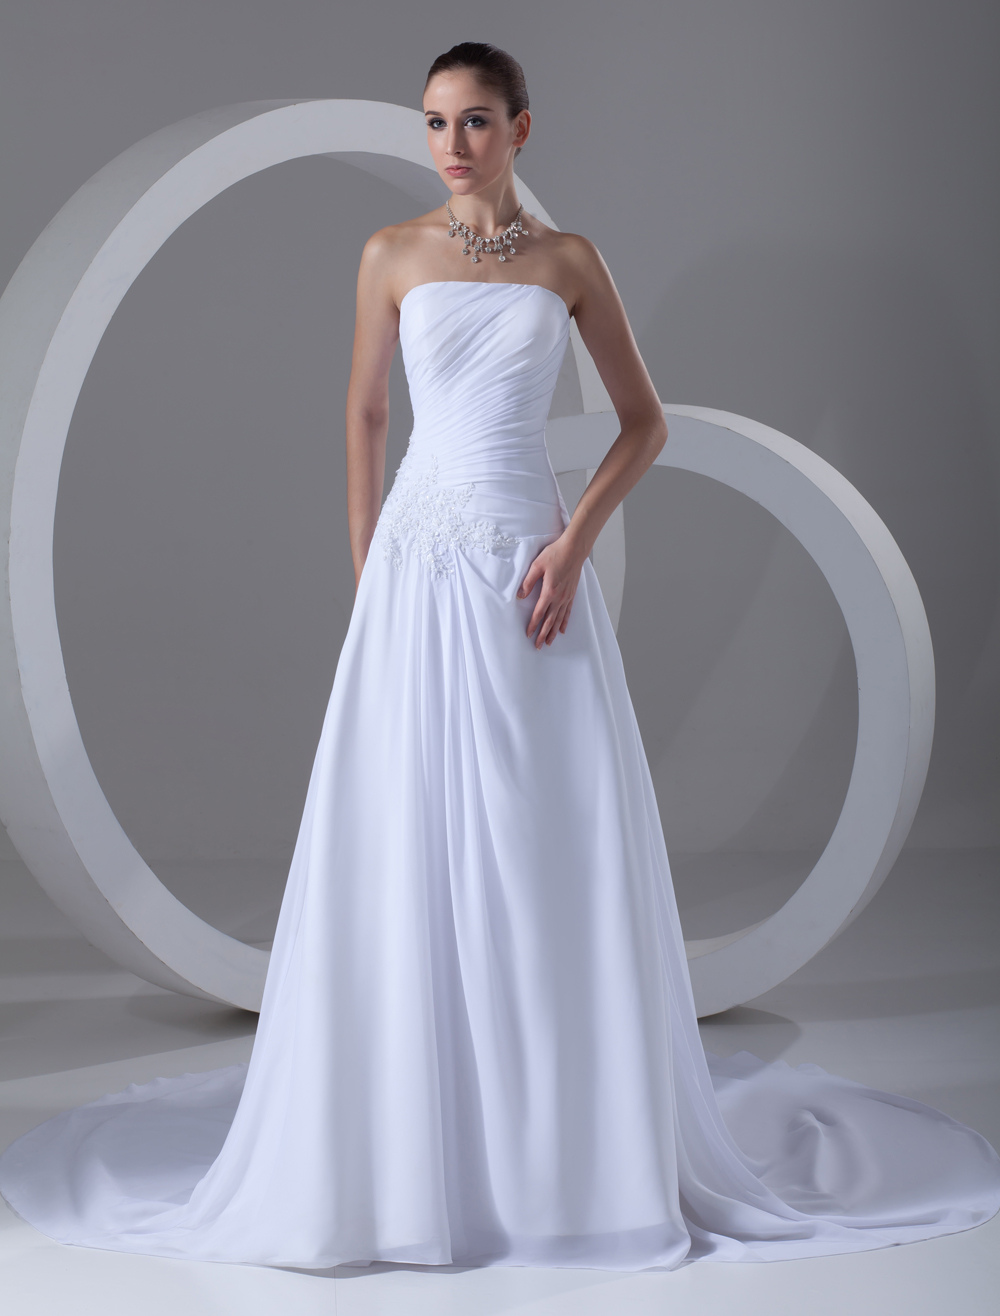 A-line Strapless Applique White Wedding Dress